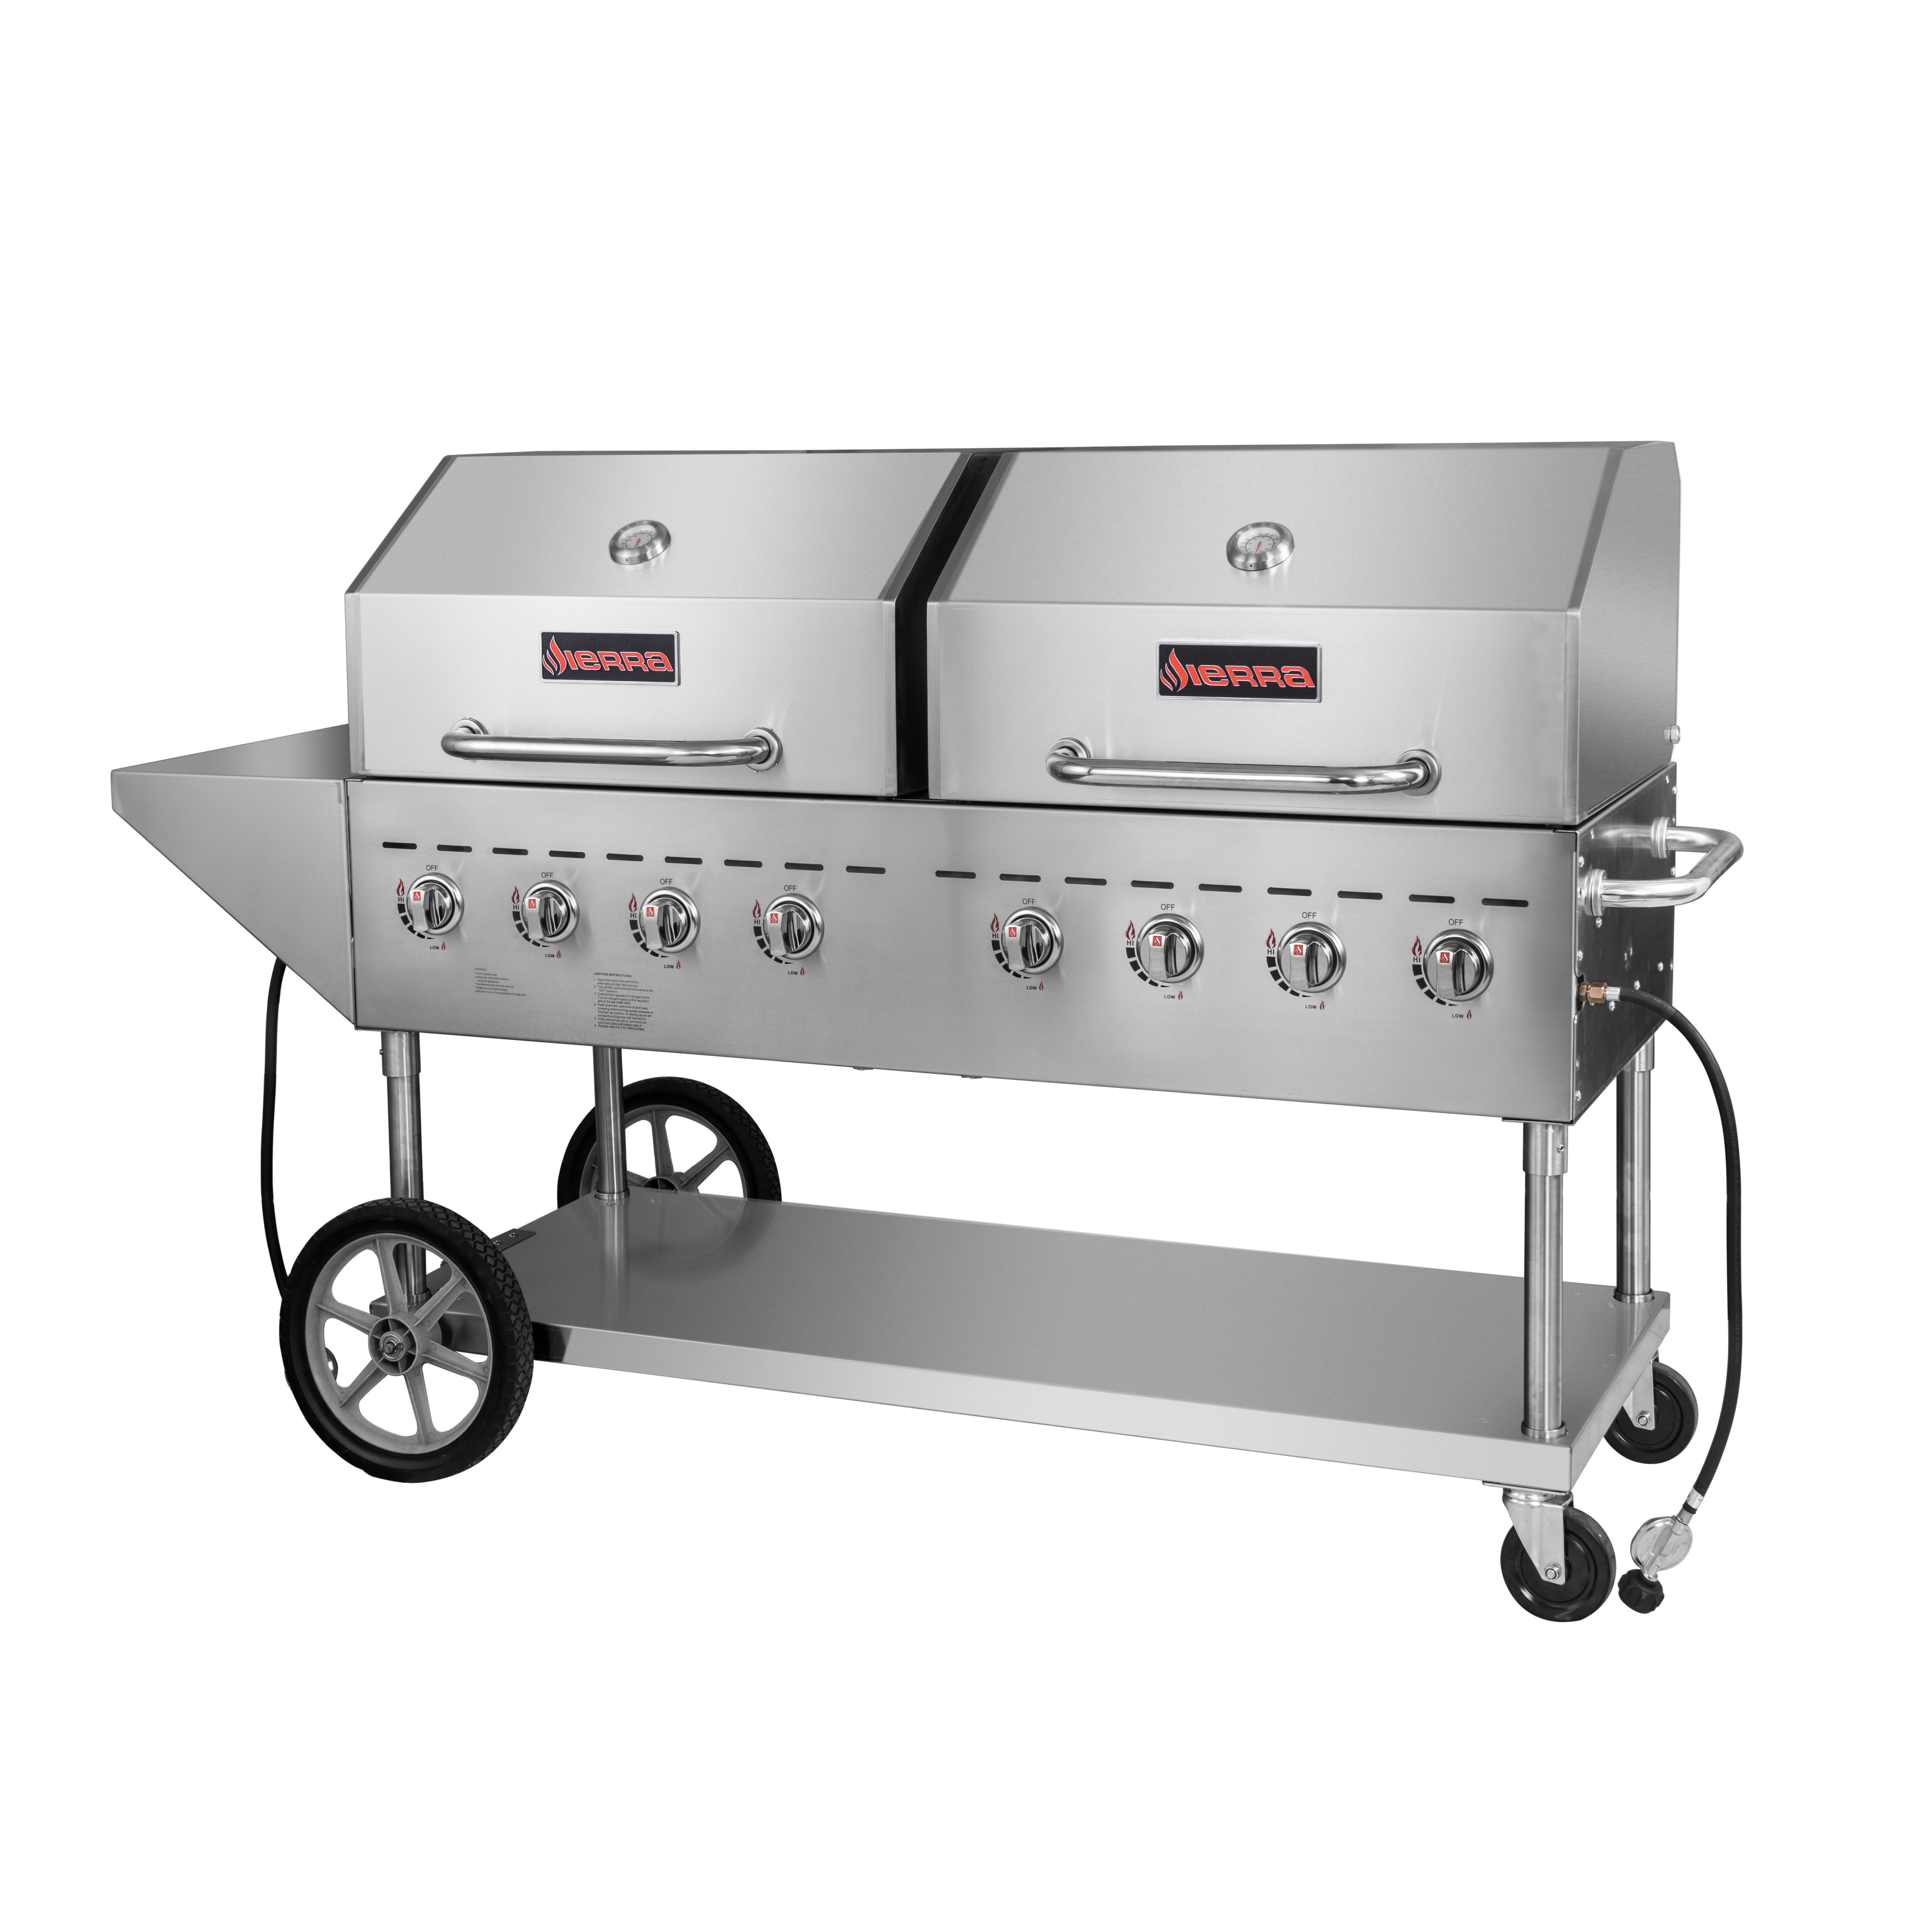 MVP SRBQ-60 charbroiler, gas, outdoor grill